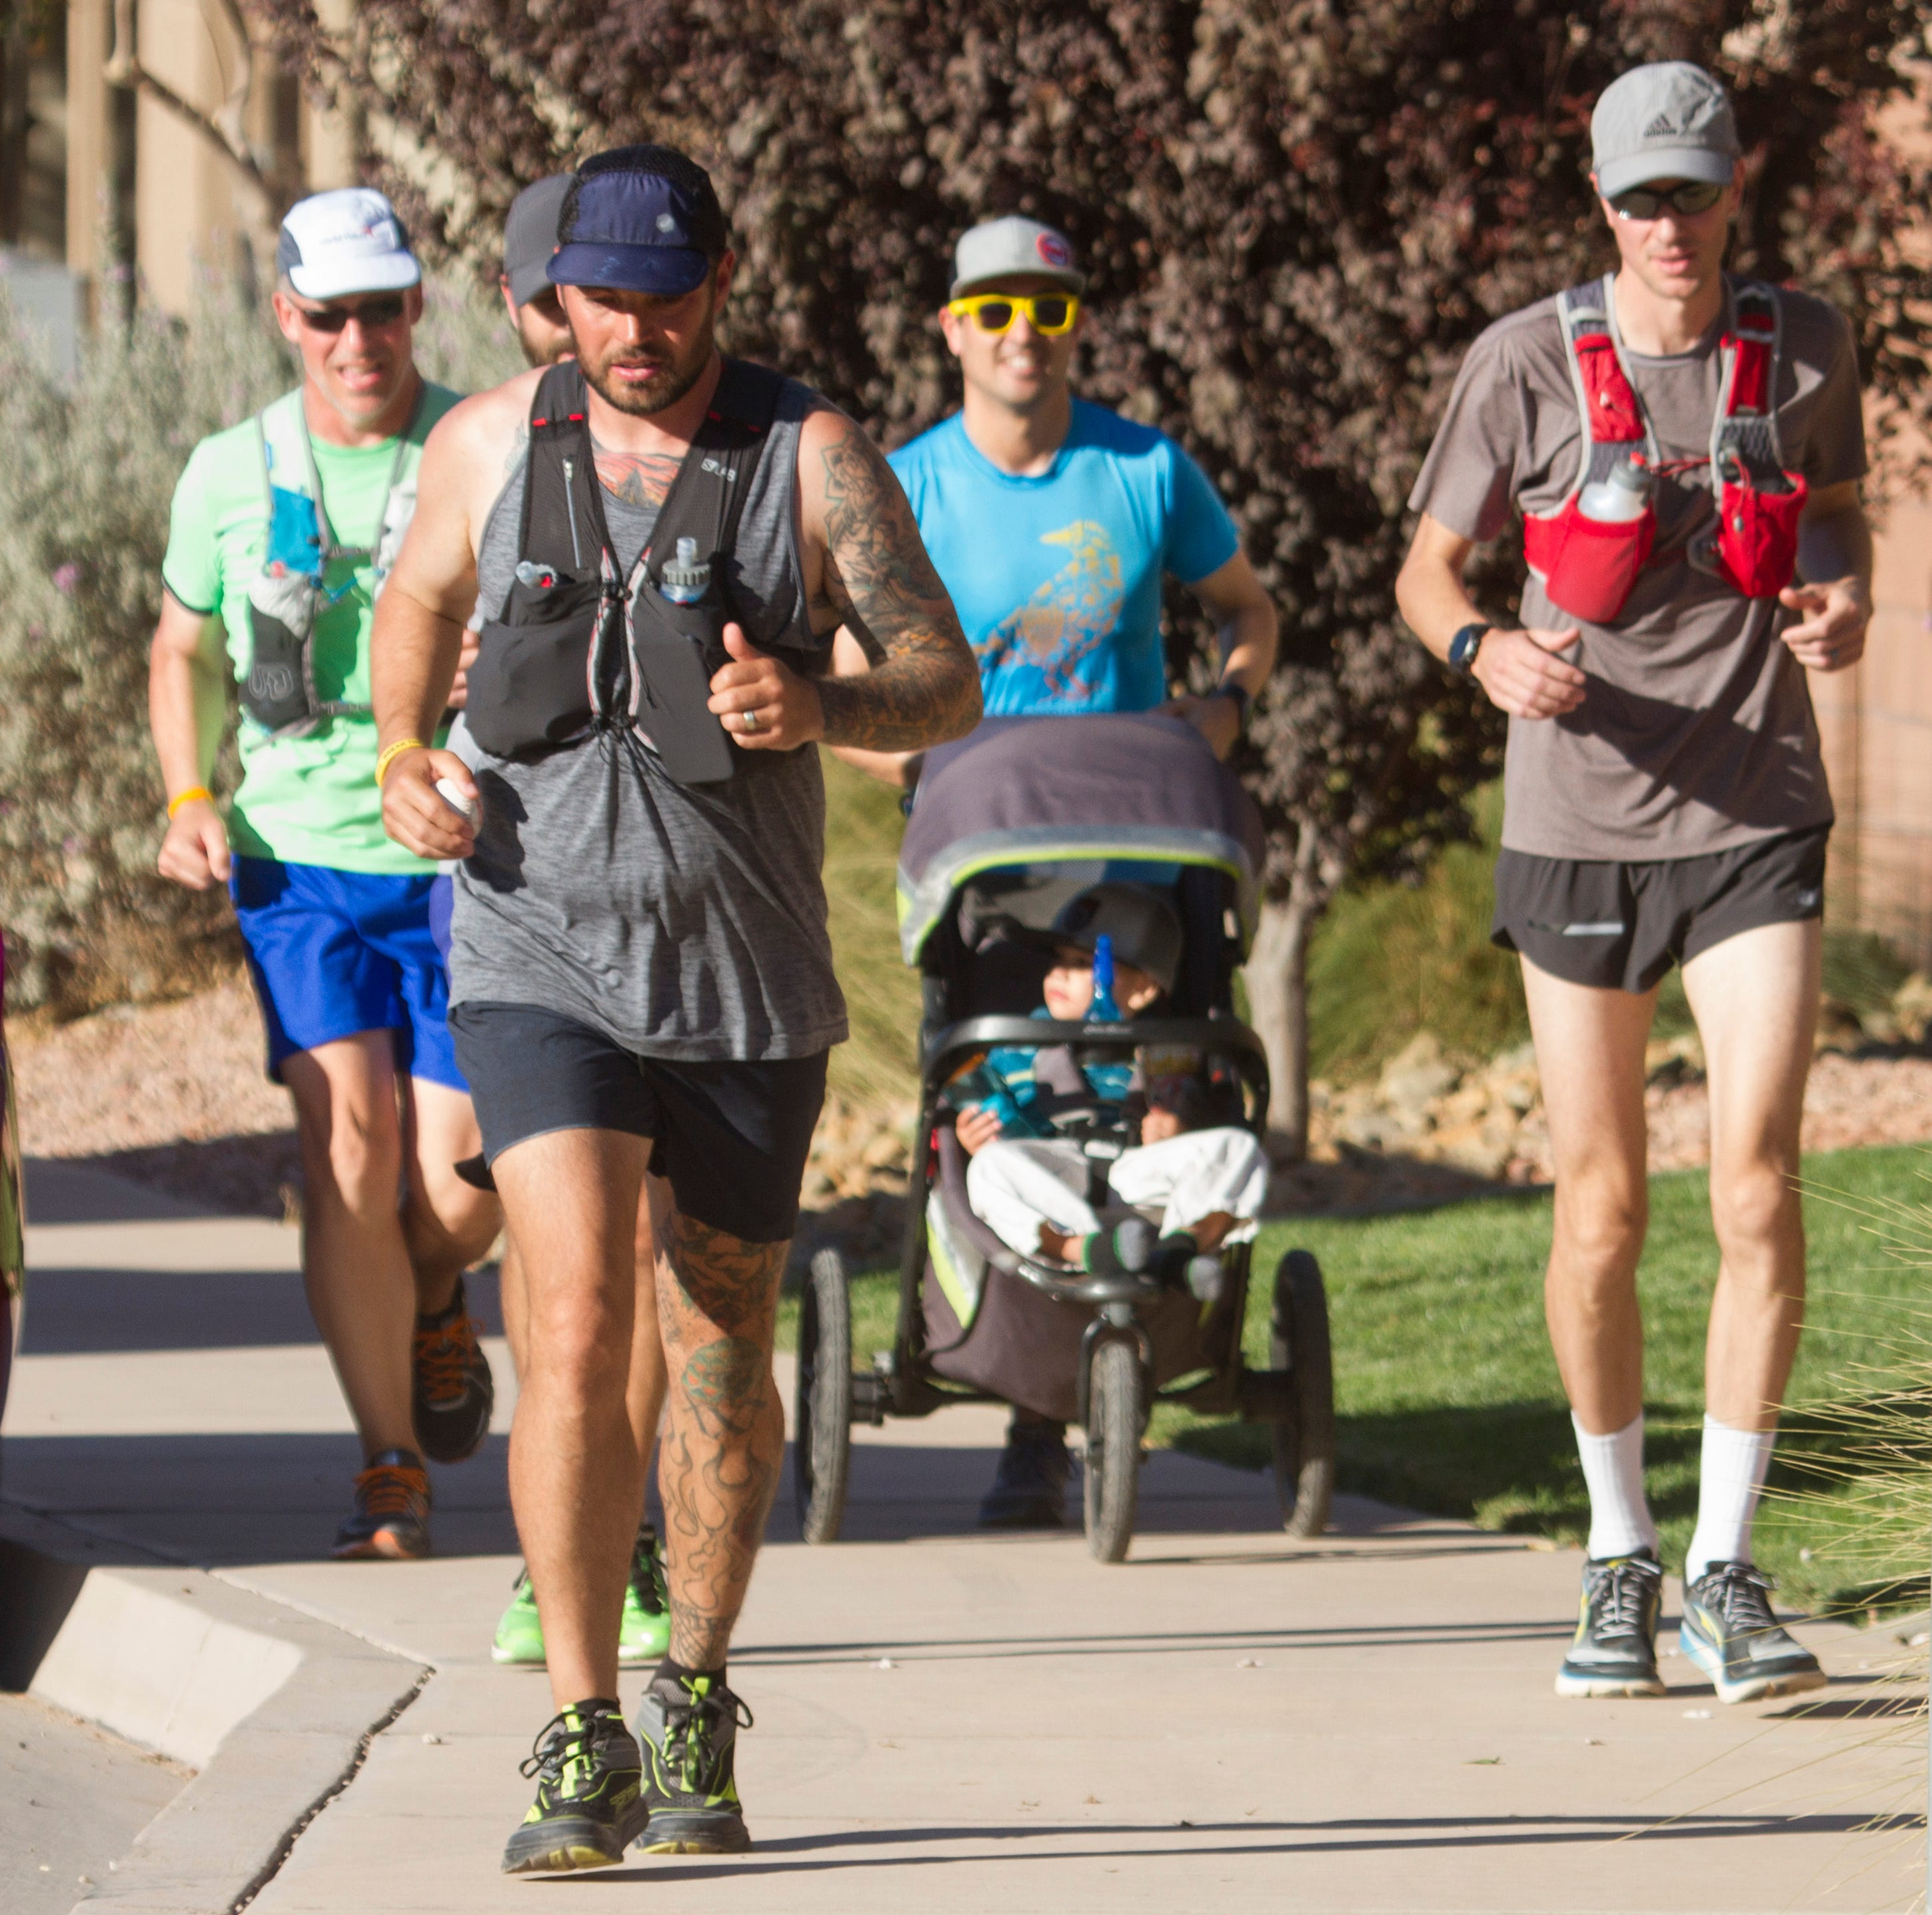 Runner treks 426 miles across Utah to raise awareness and fight human trafficking